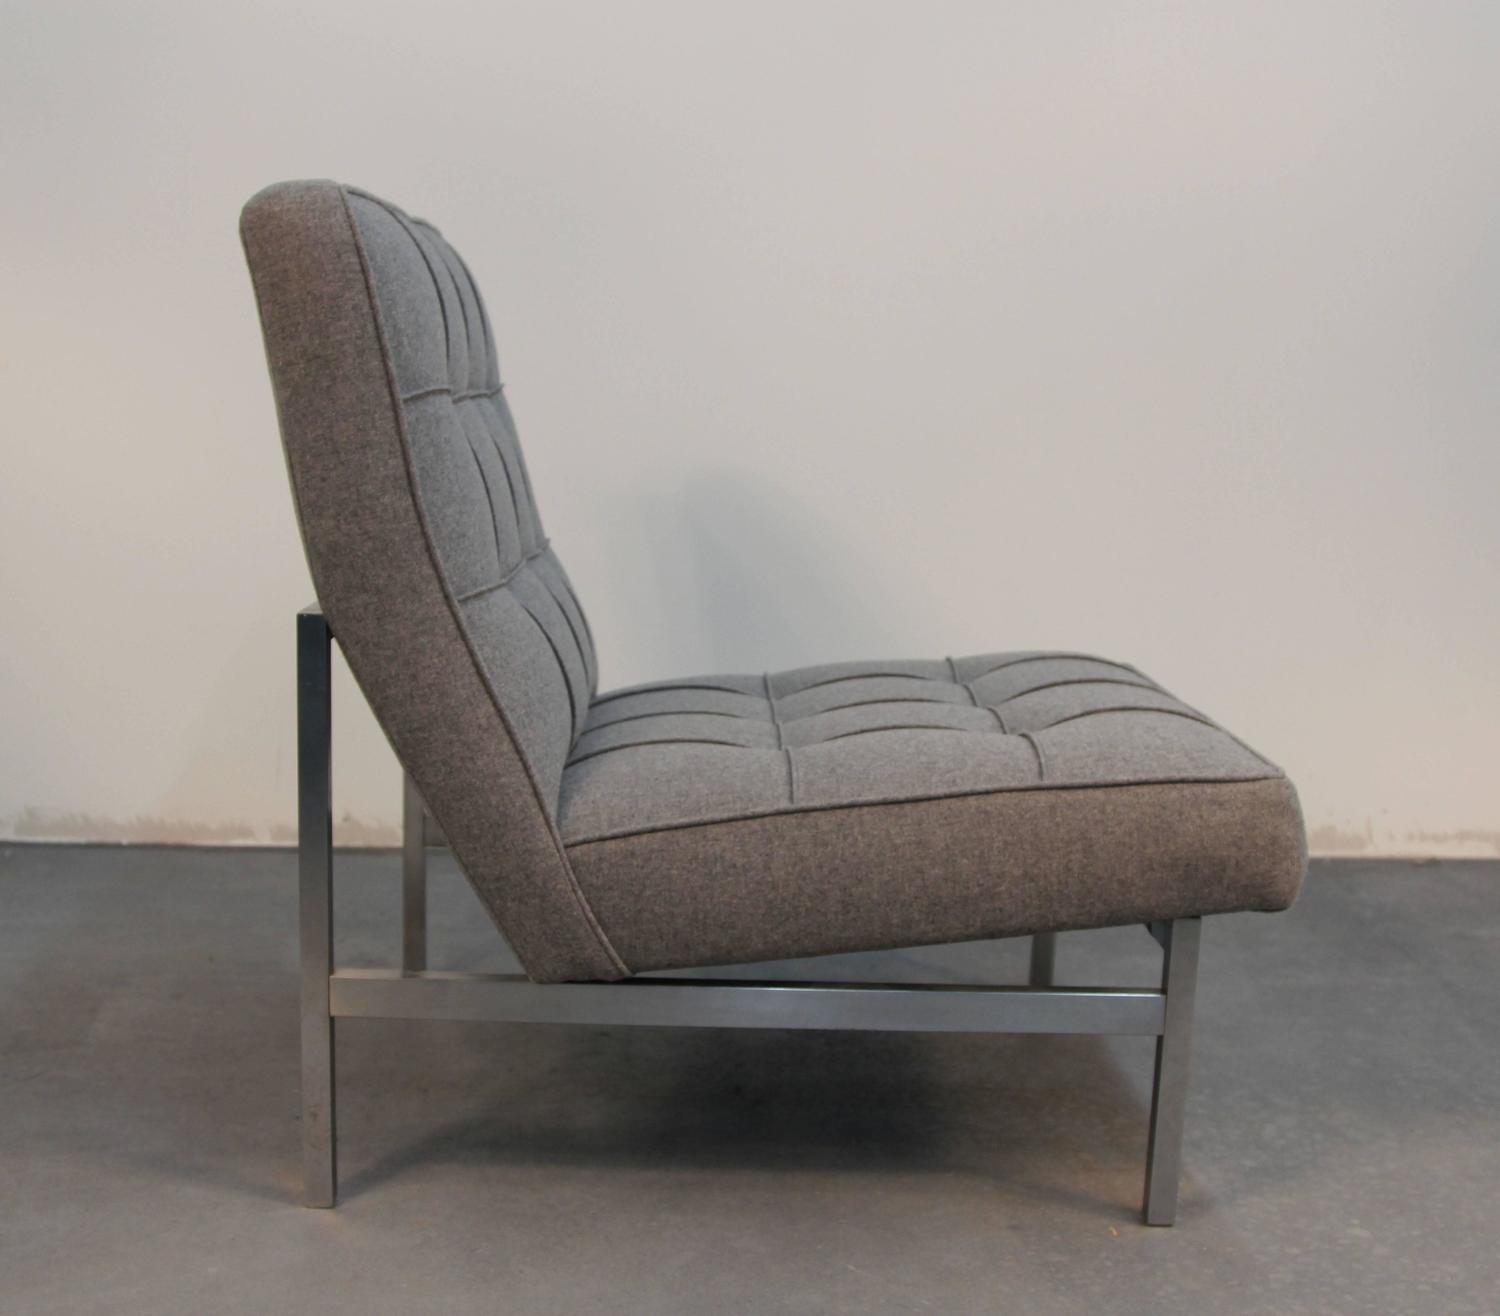 Pair Of Florence Knoll Parallel Bar Lounge Chairs At 1stdibs